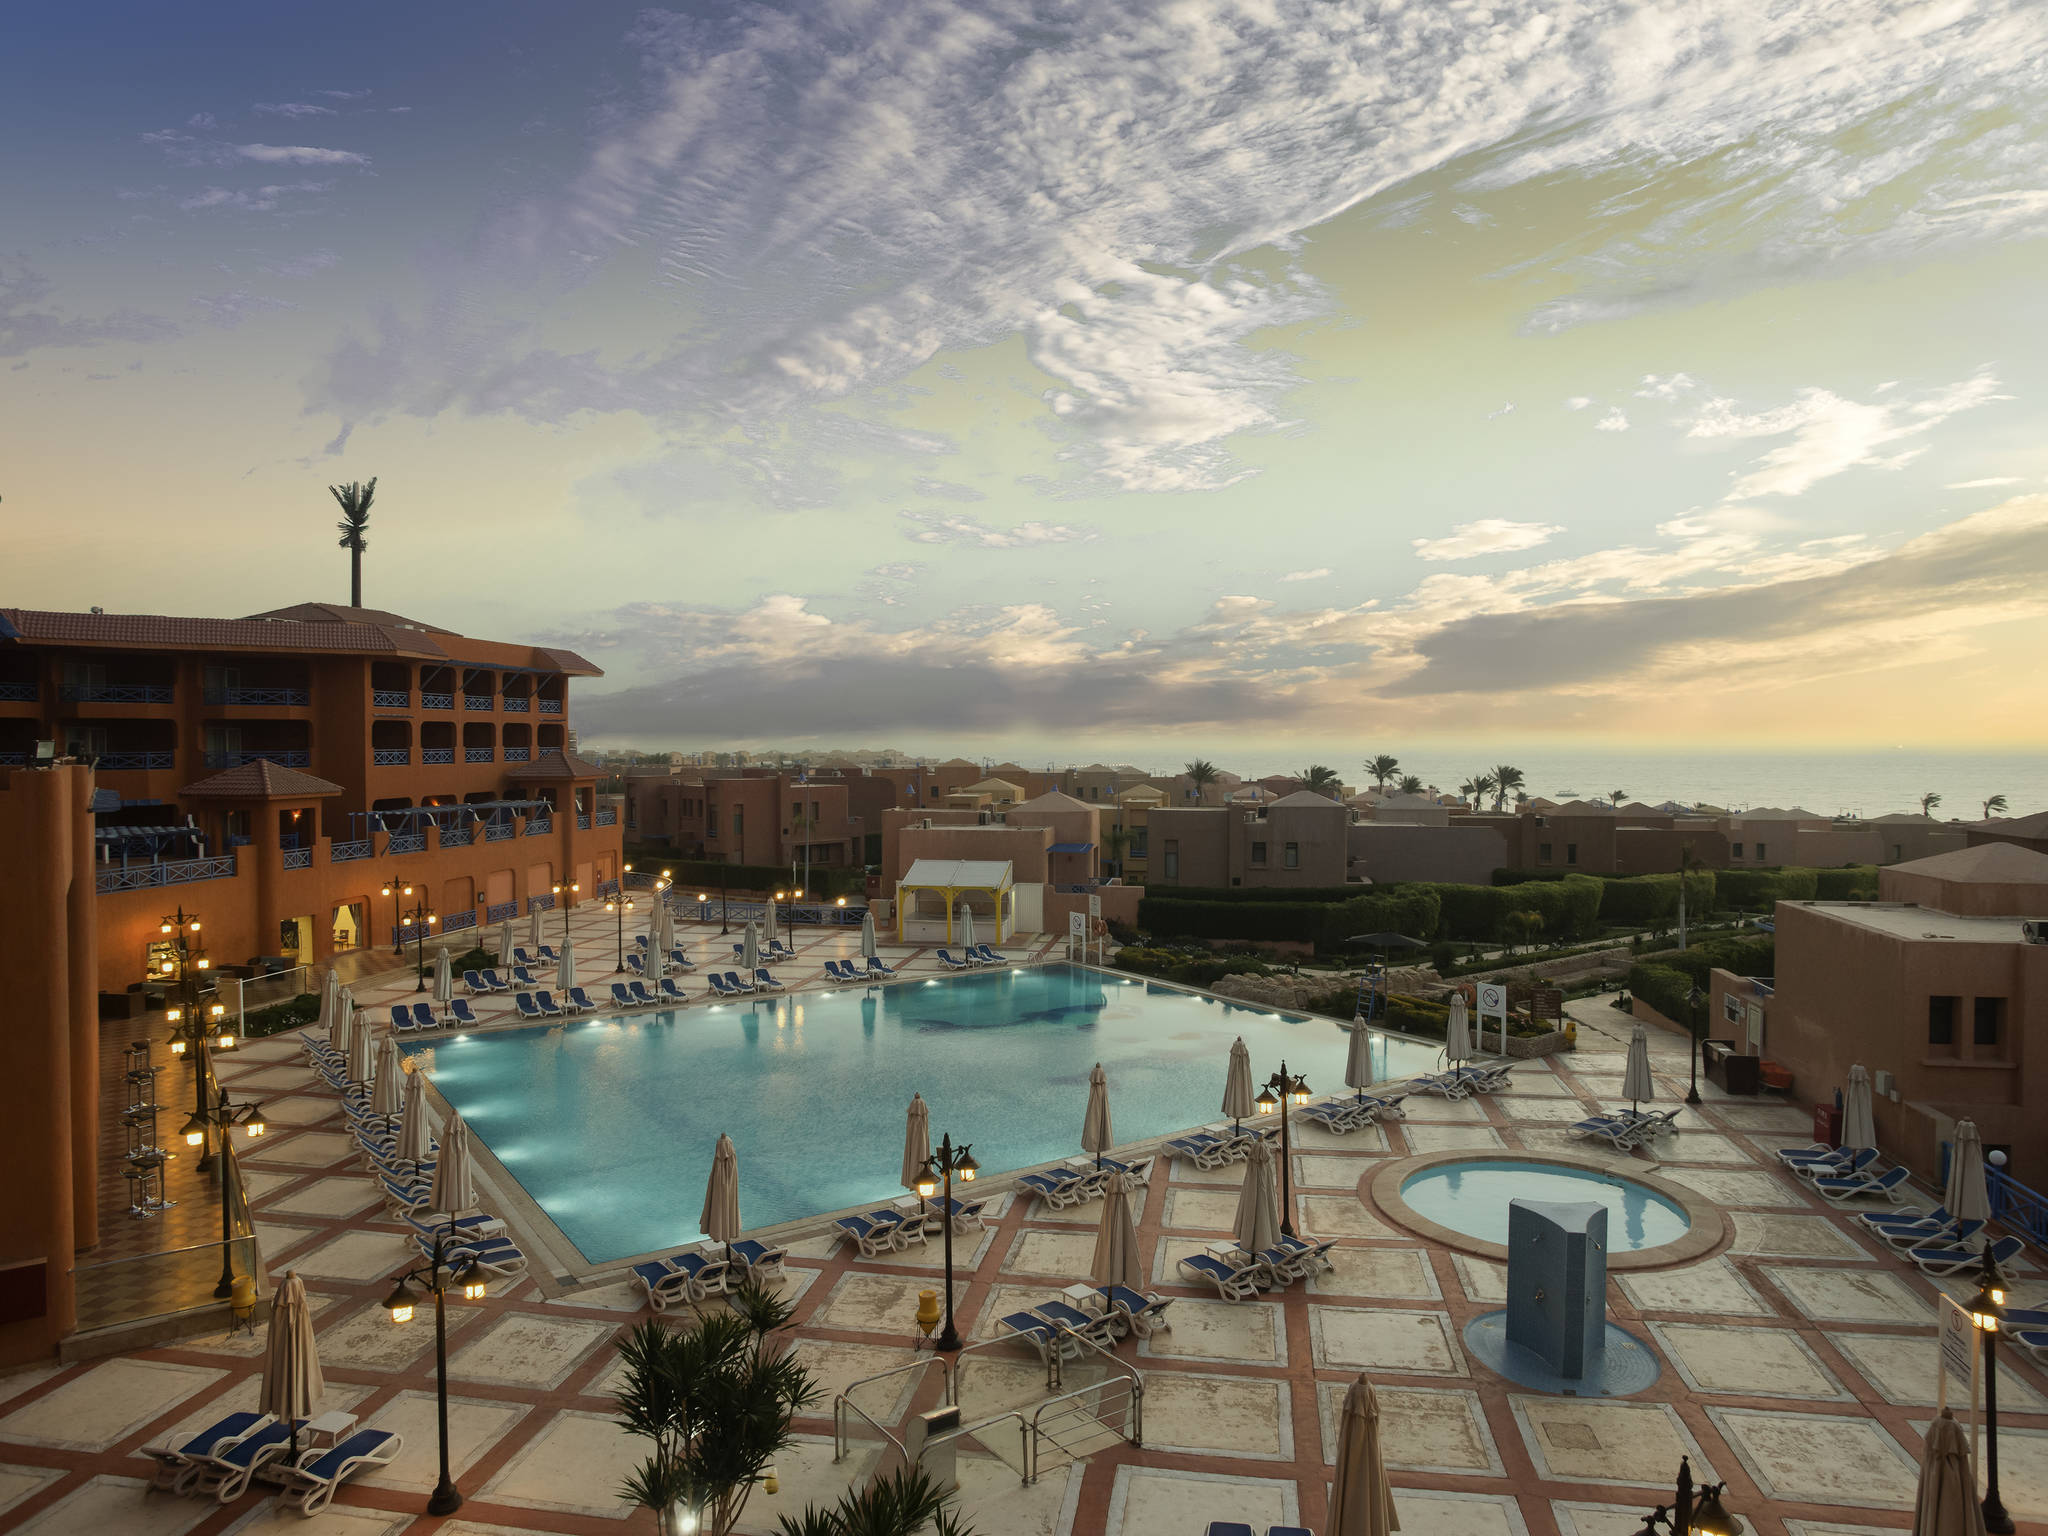 Hotel - Cancun Sokhna - Managed by AccorHotels